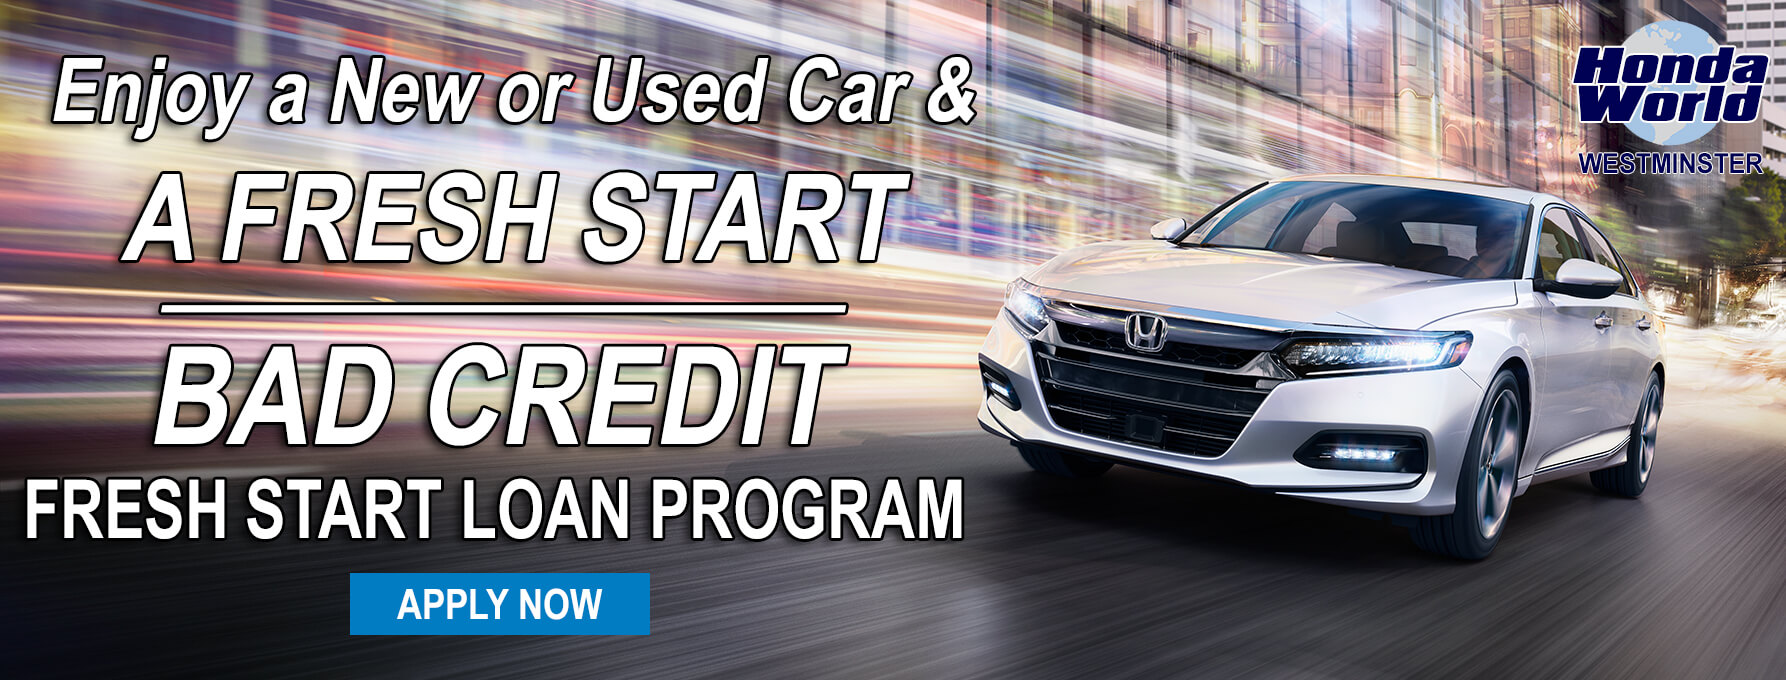 Car Loans For People With Bad Credit >> Bad Credit Car Loans Orange County Ca Westminster Auto Loans Honda World